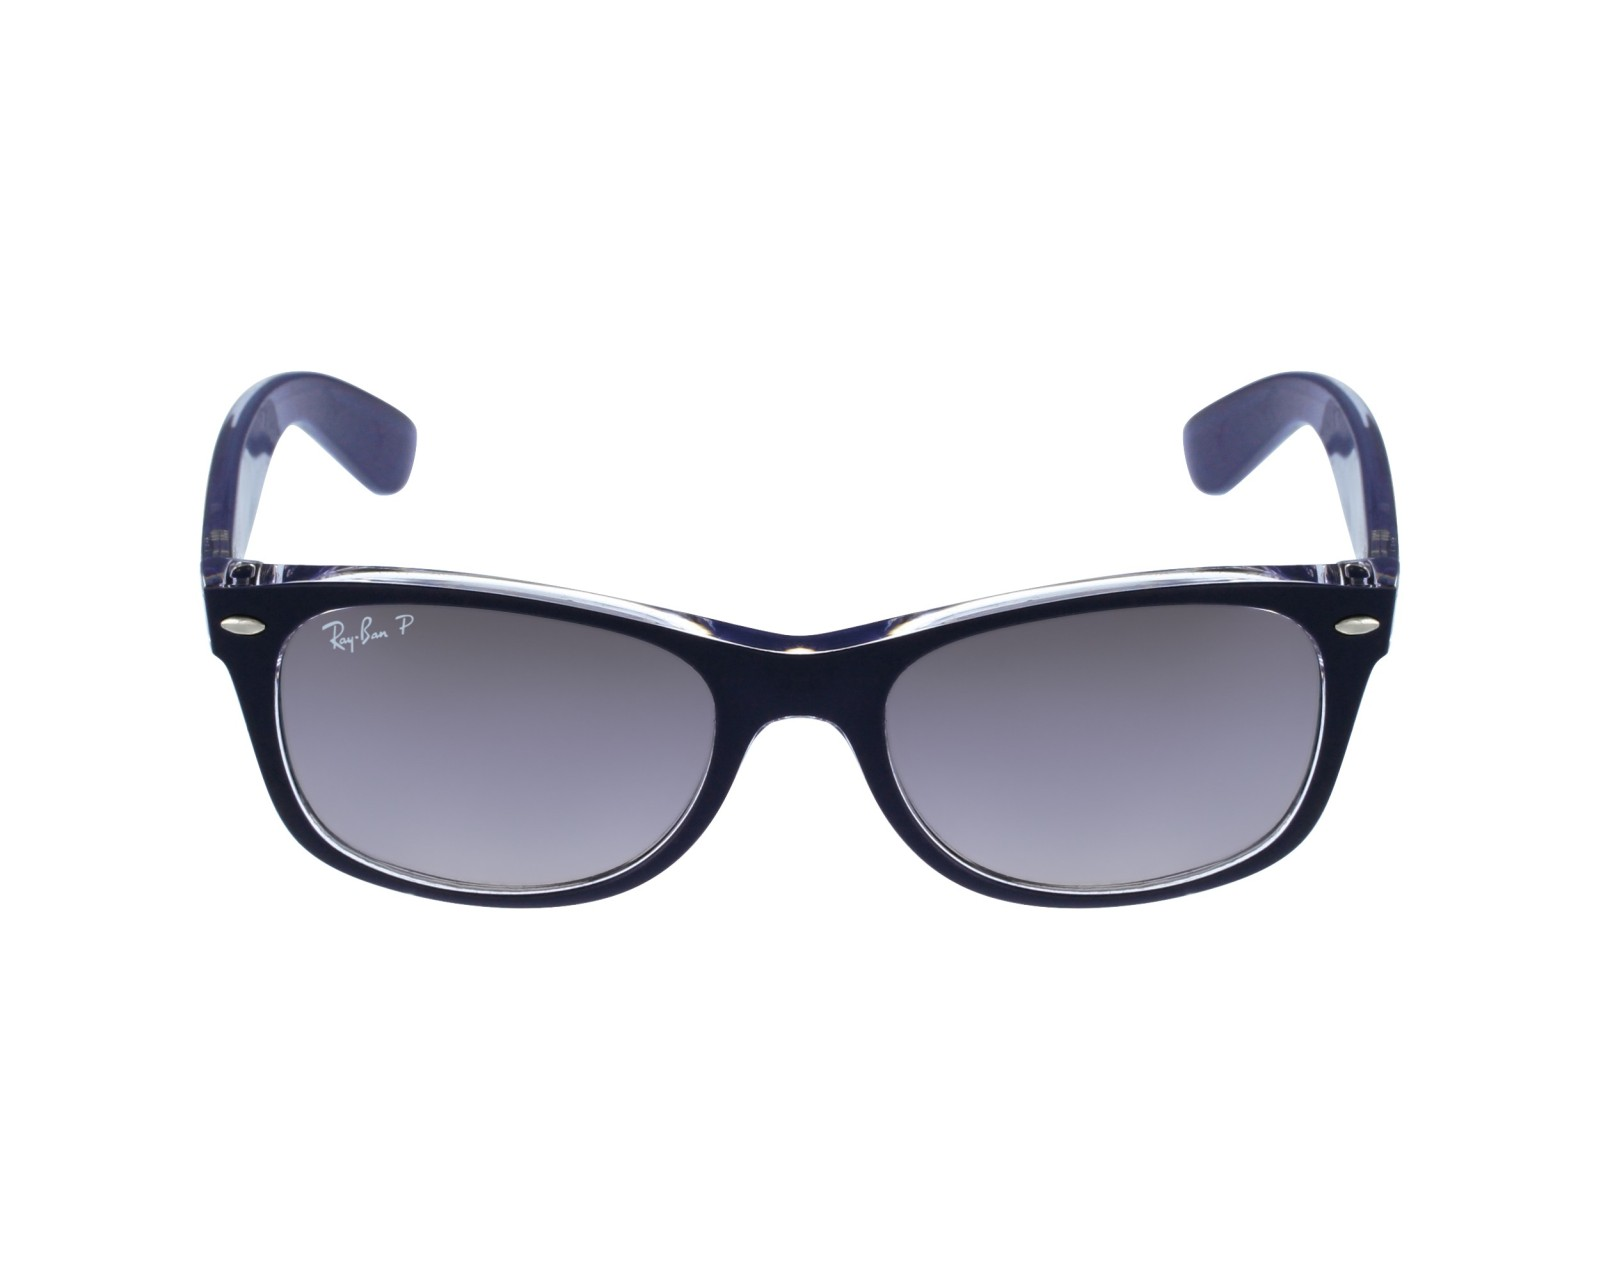 ray ban new wayfarer 2132 hipk  Ray Ban New Wayfarer has been added to your cart